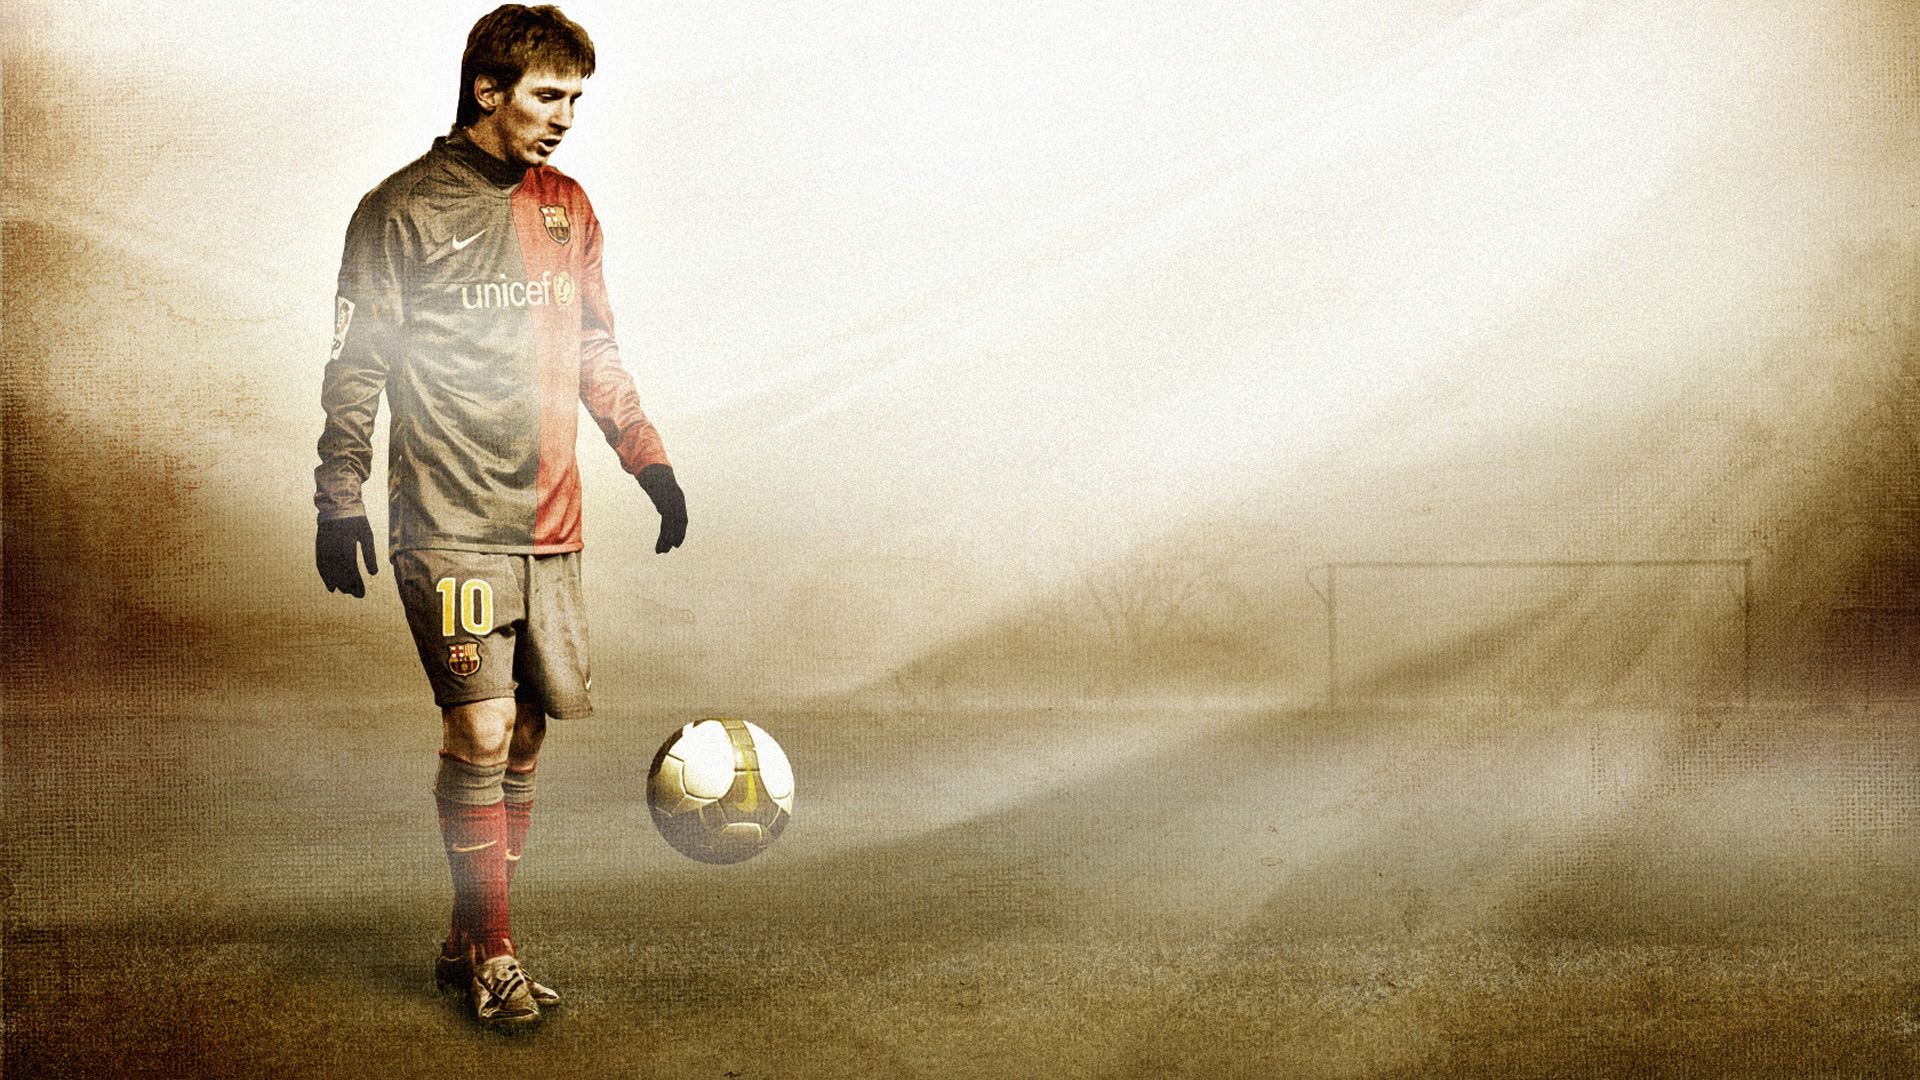 Wallpaper download cool soccer background free pic wpd009922 download voltagebd Choice Image